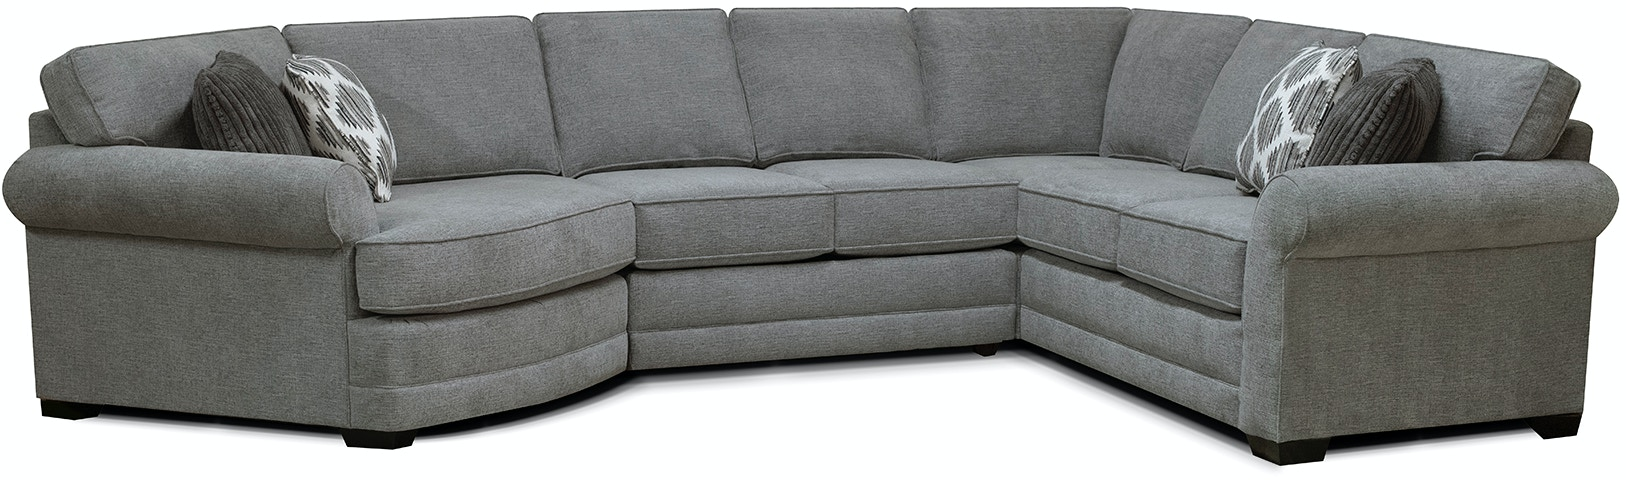 England Living Room Brantley Sectional 5630 Sect England